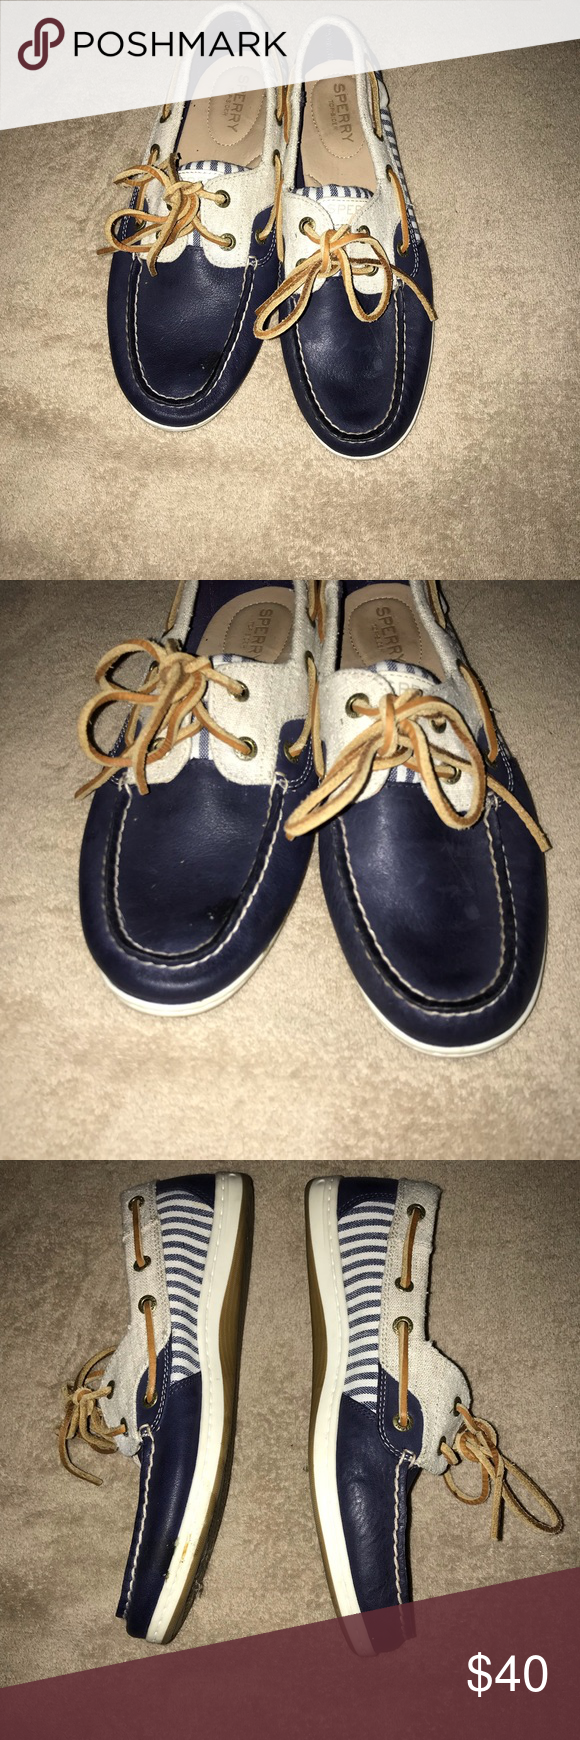 507e99b31fb3 Speedy Top Sliders Navy and white stripped Sperry Top Sliders. Only worn  once. Love